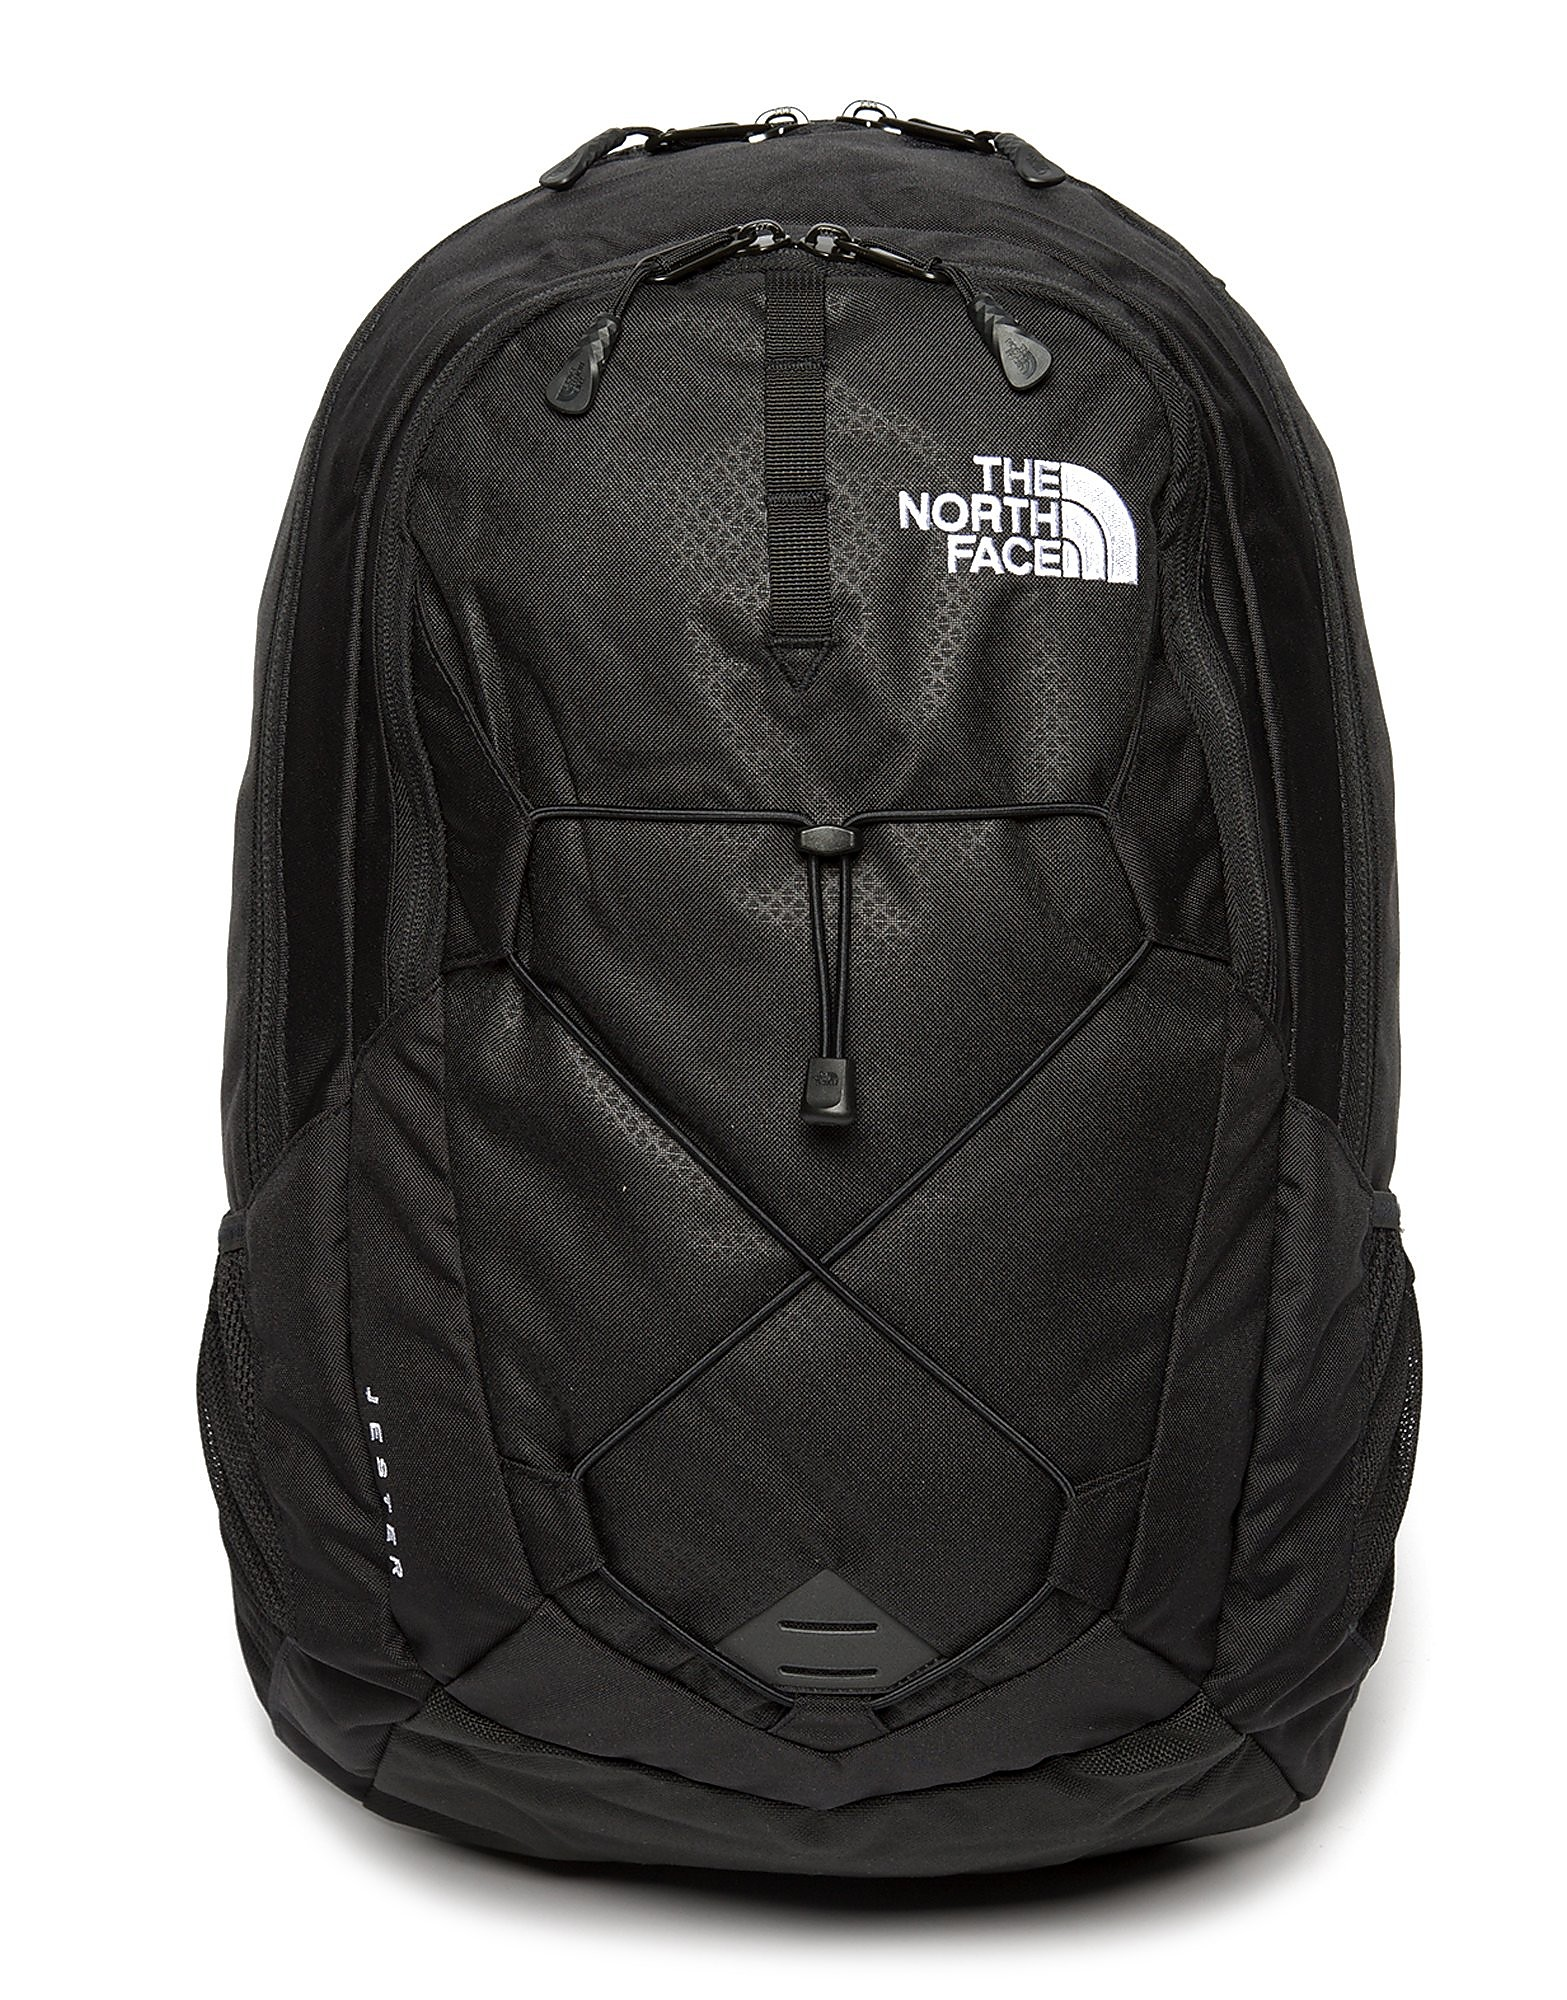 The North Face Sac à dos Jester